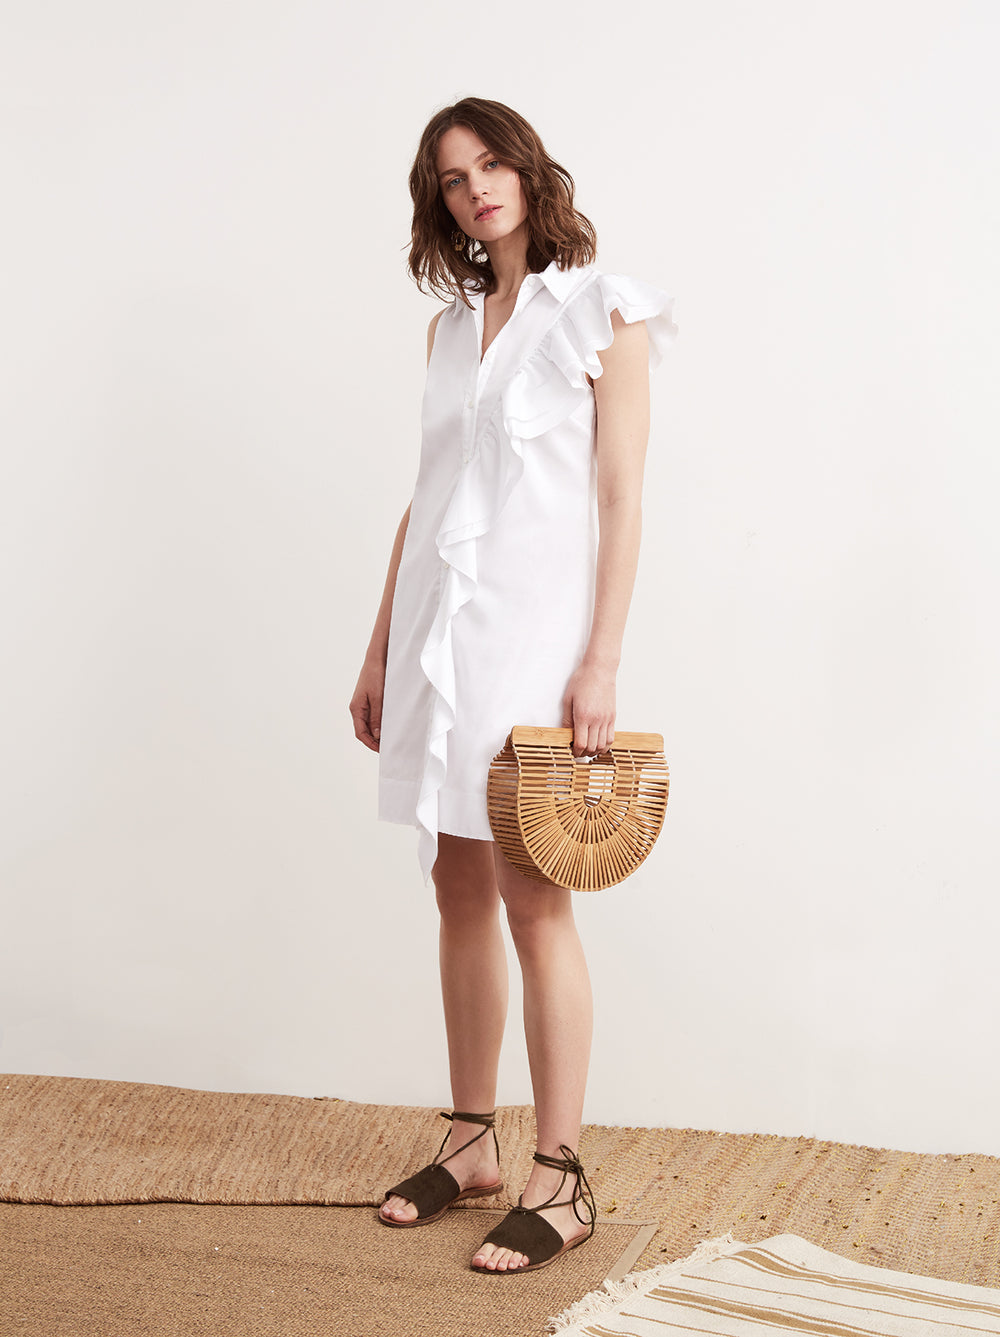 Valse White Cotton Frill Shirt Dress by KITRI Studio